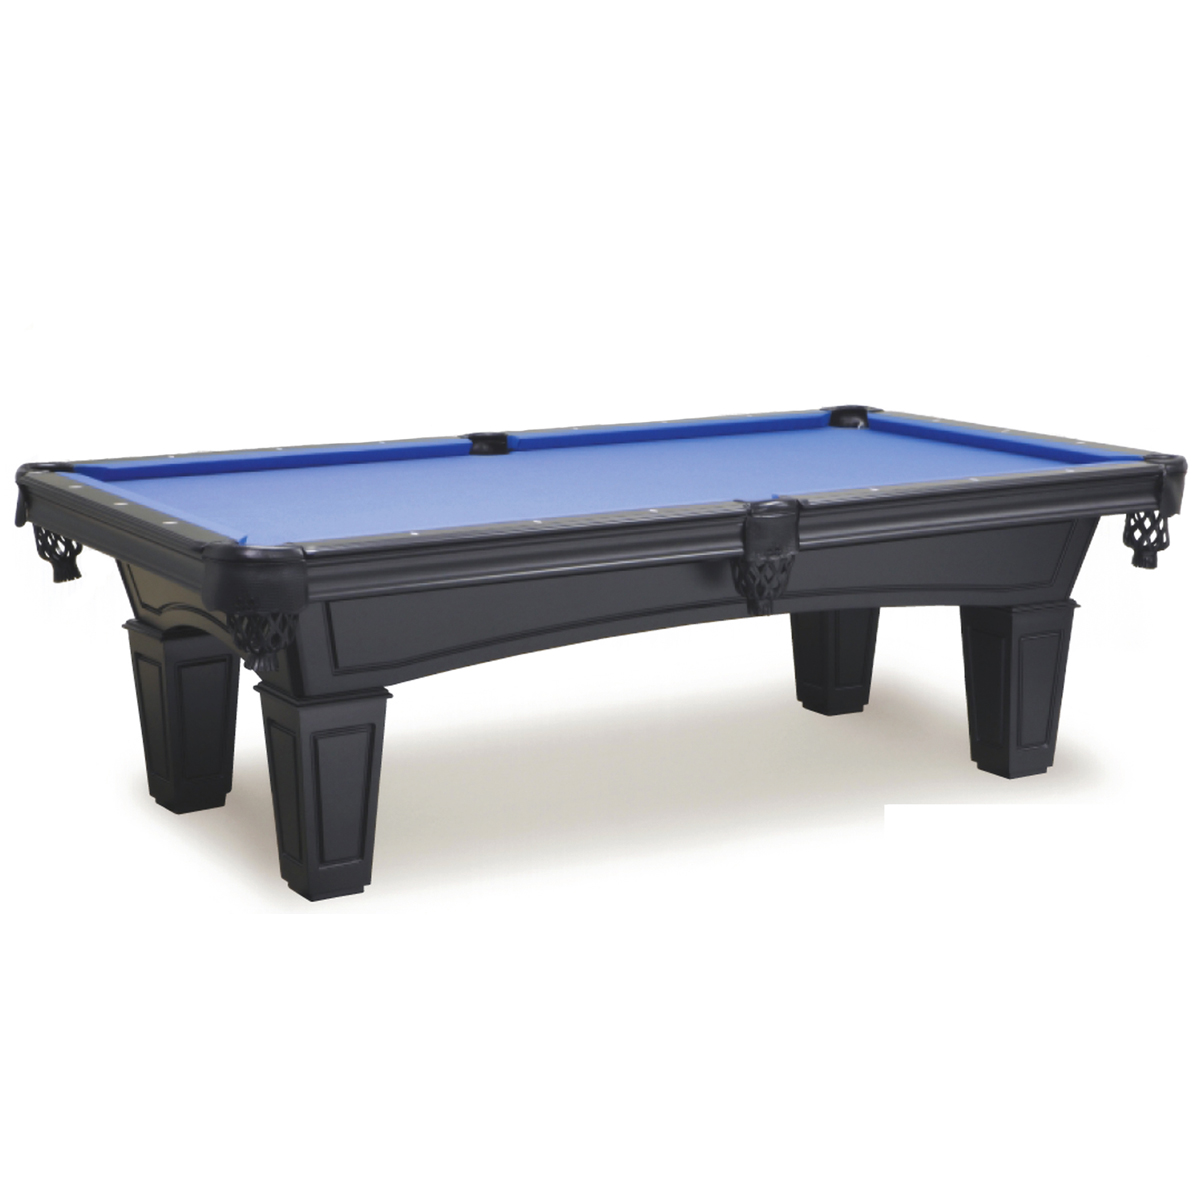 Pool table legs accessories for sale - The Shadow Pool Table